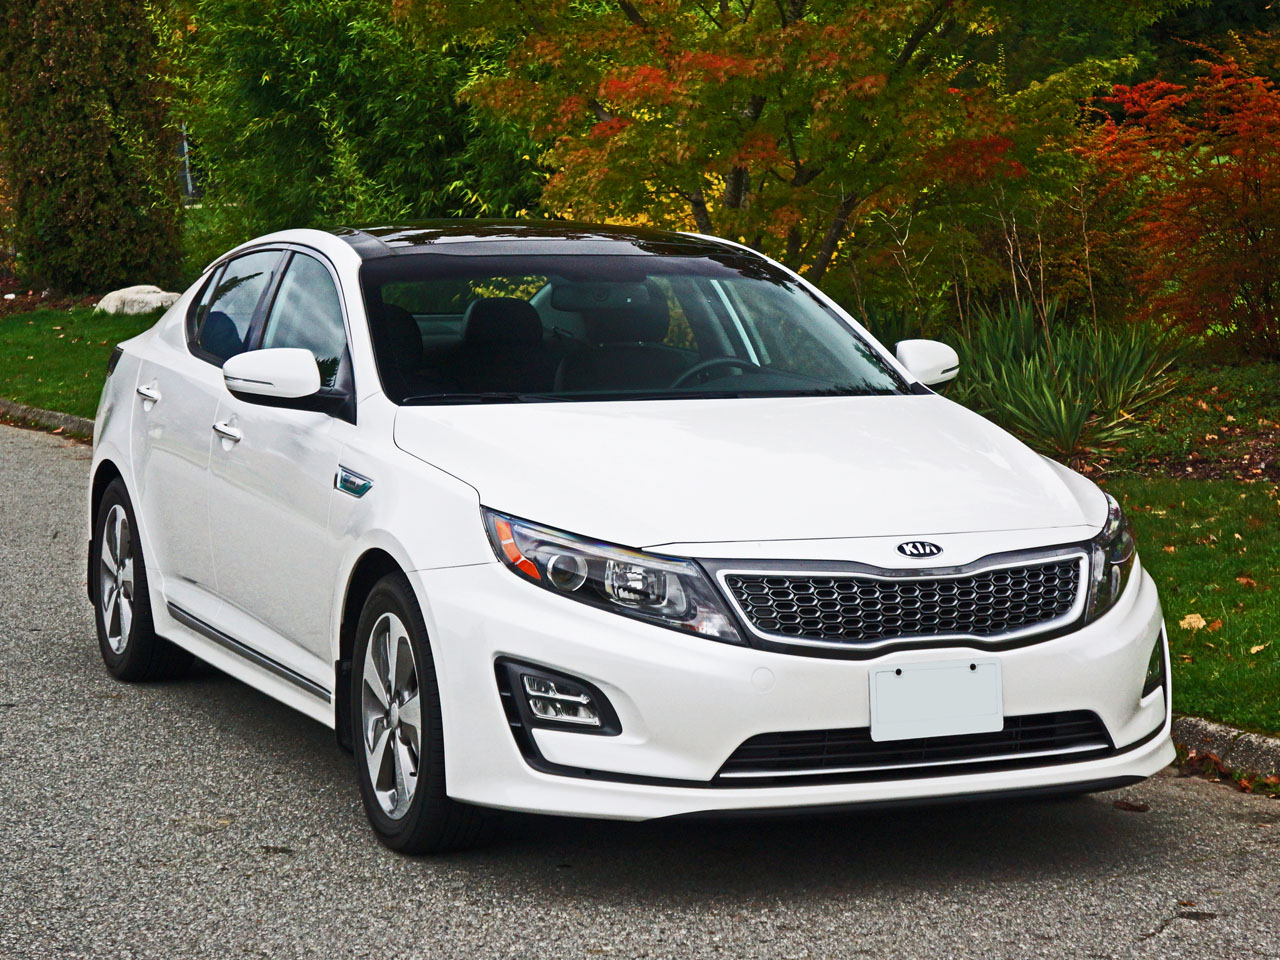 2015 kia optima hybrid ex premium road test review carcostcanada. Black Bedroom Furniture Sets. Home Design Ideas